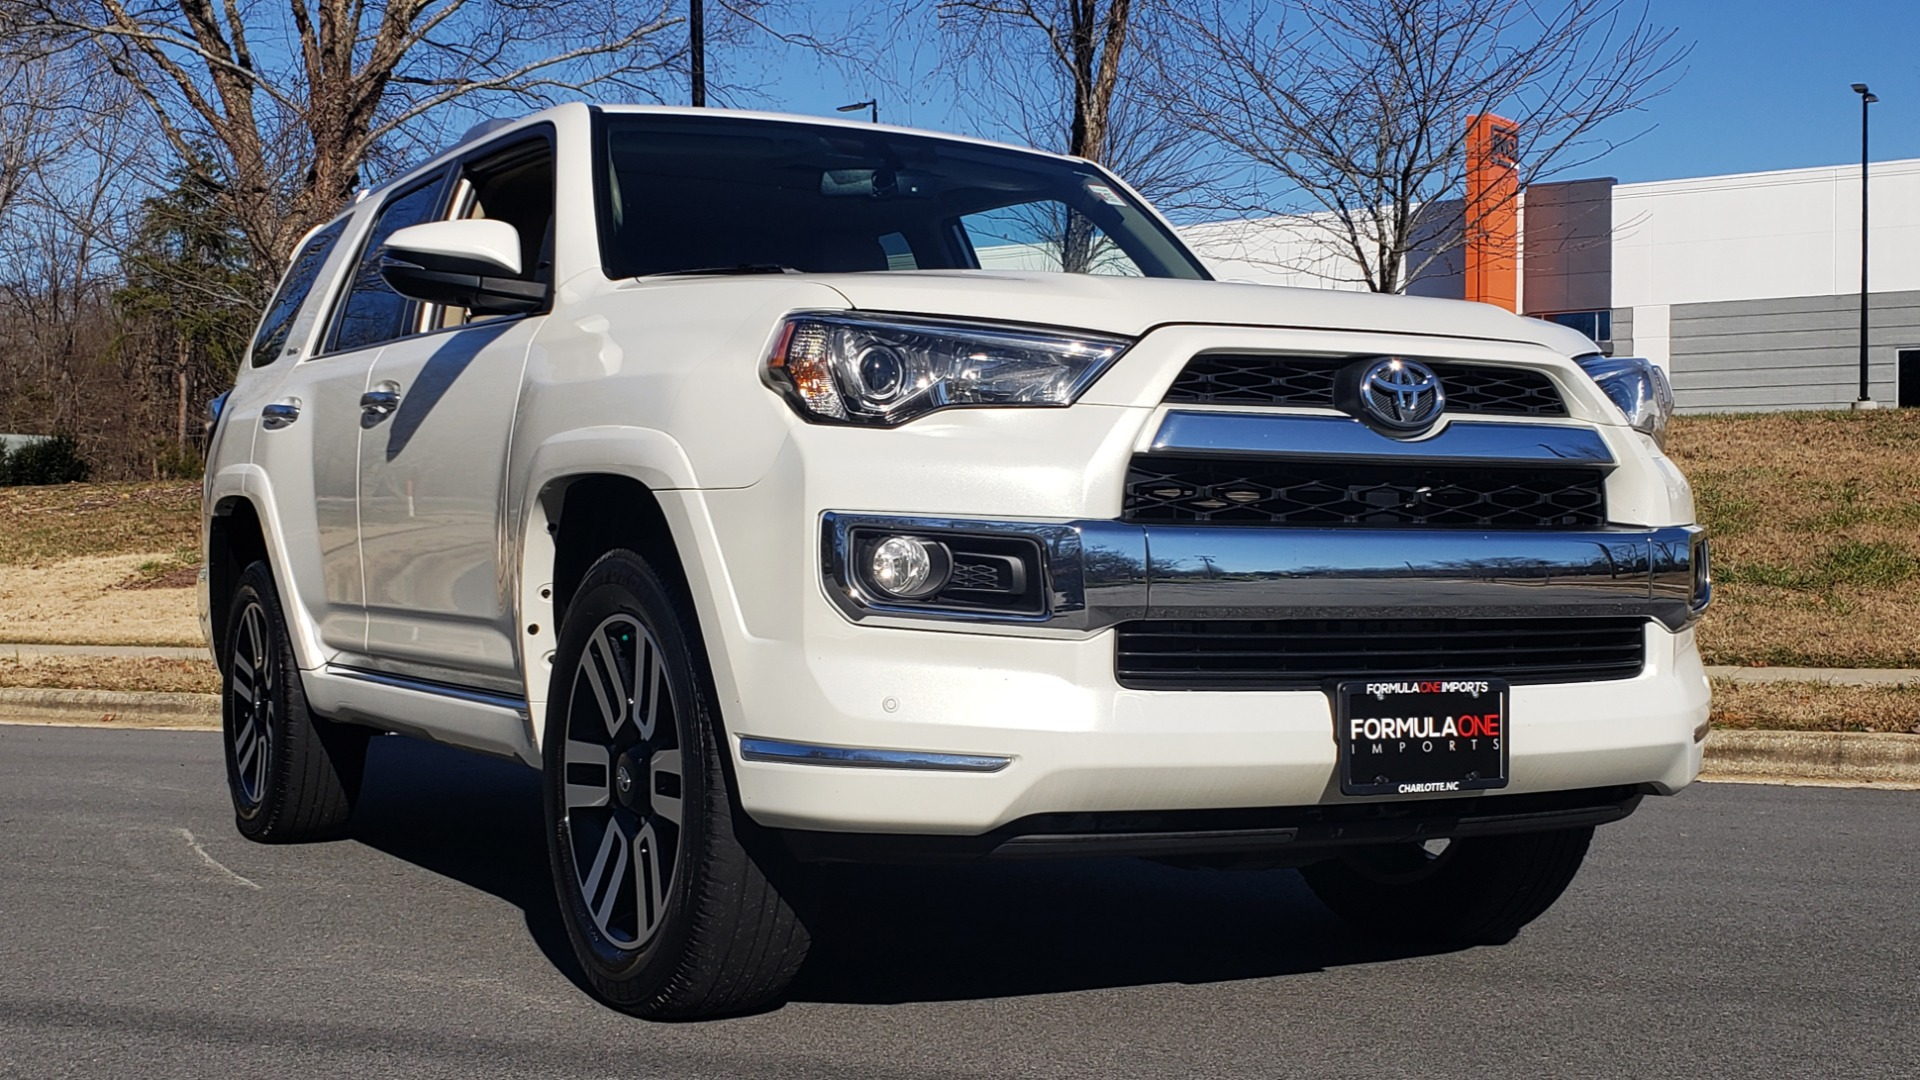 Used 2018 Toyota 4RUNNER LIMITED 4X4 / 4.0L V6 / AUTO / NAV / SUNROOF / JBL AUDIO / REARVIEW for sale Sold at Formula Imports in Charlotte NC 28227 21